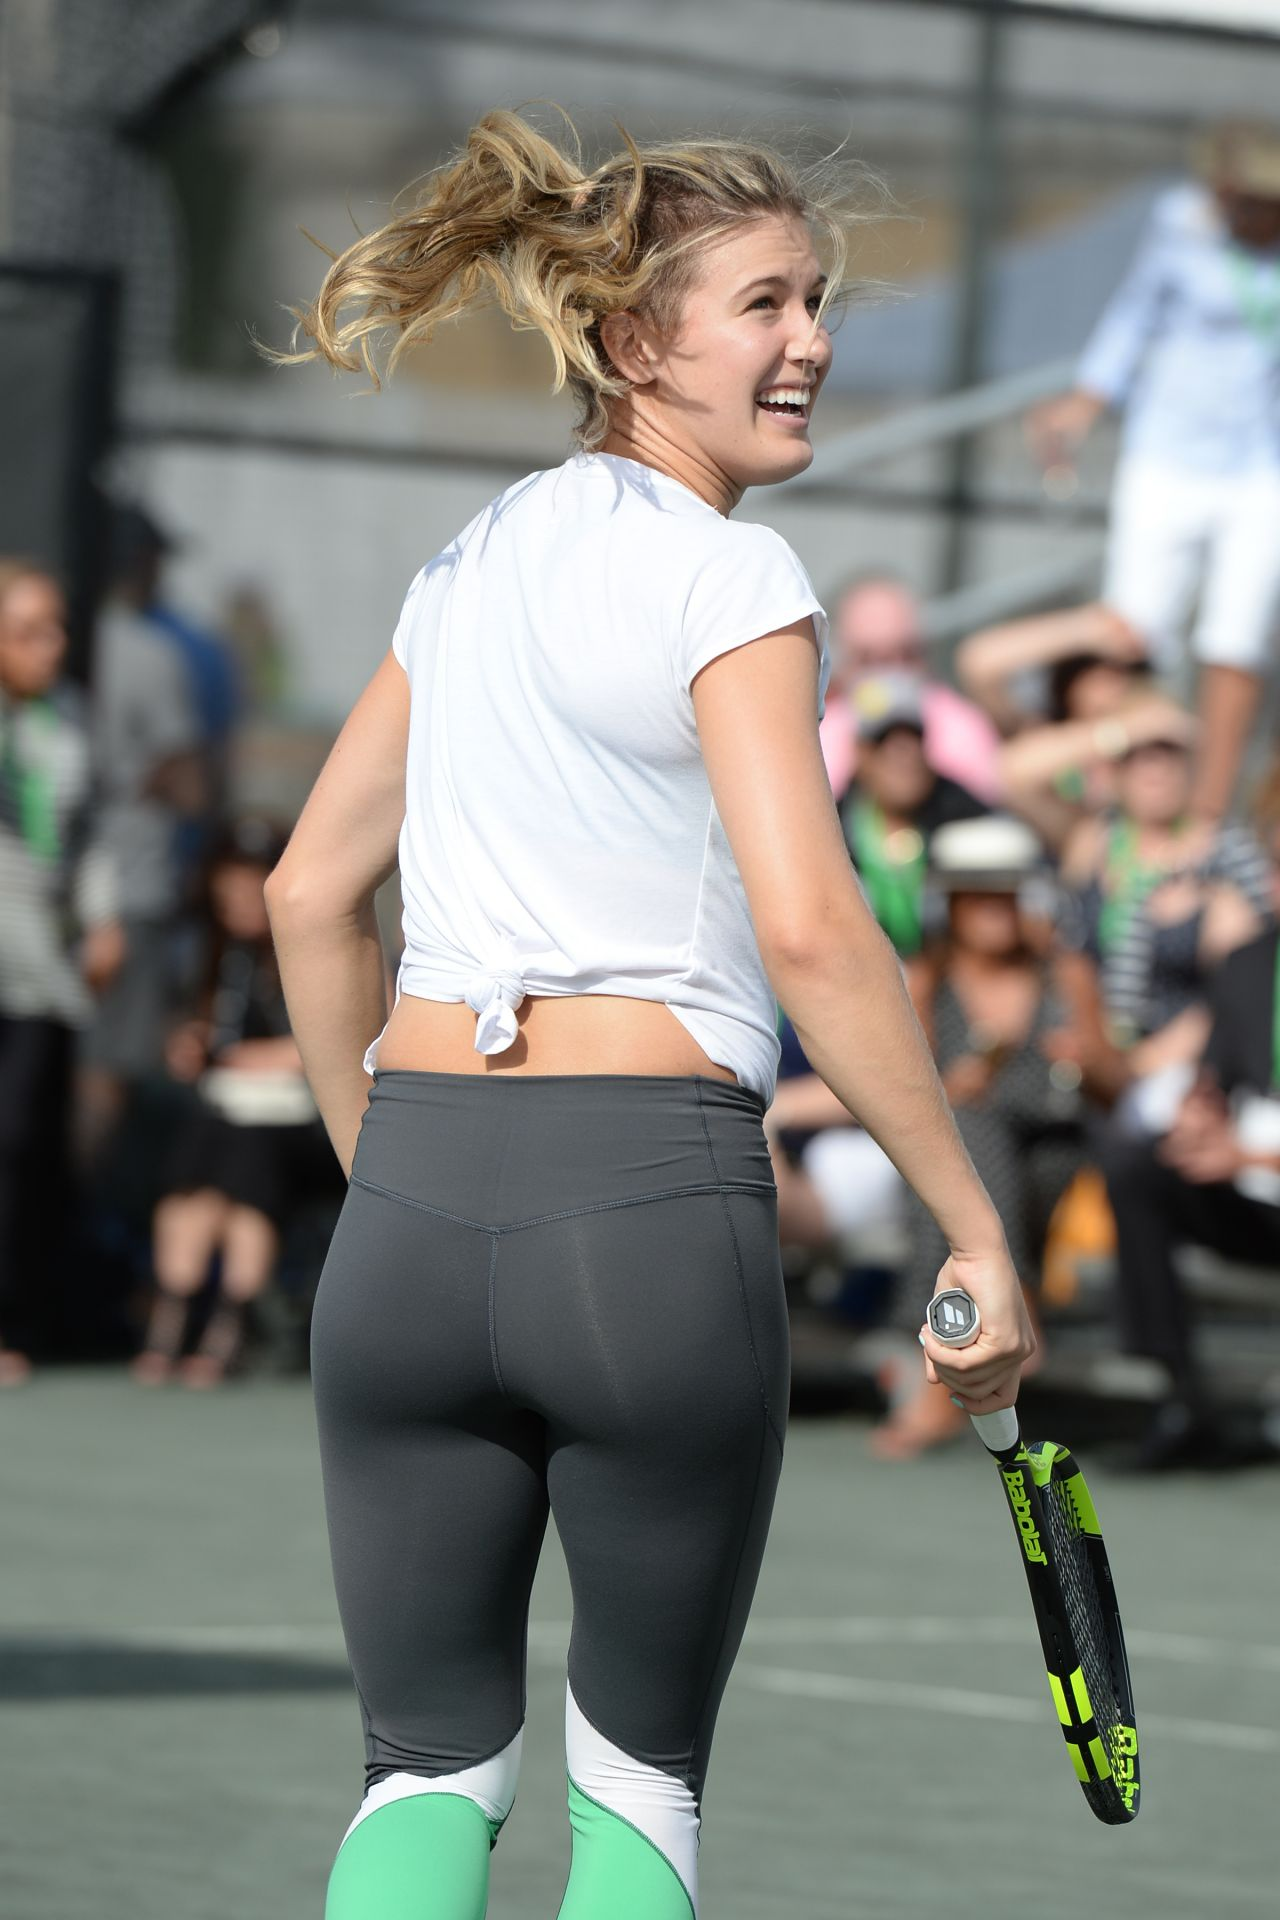 Bouchard Serena Williams & Chris Evert All Star Tennis Event